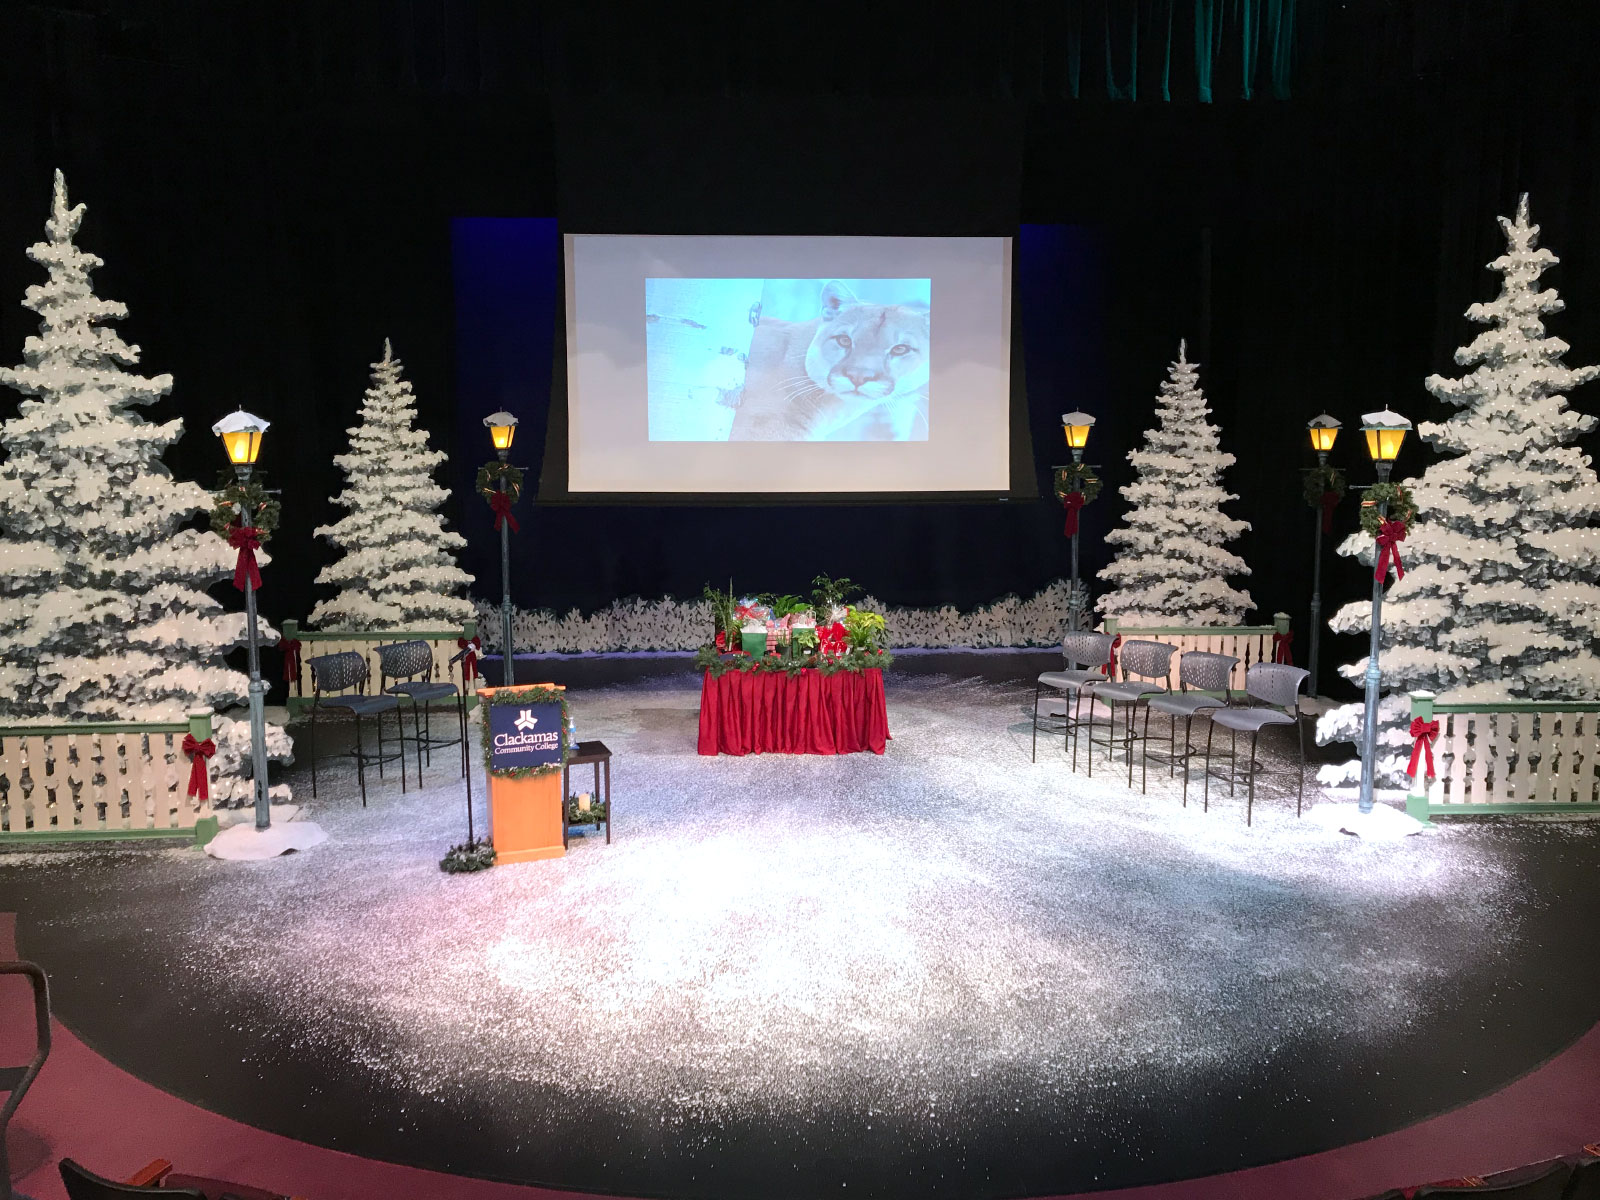 The McLoughlin theater decorated for Christmas, with snow, trees, podium and display in Niemeyer Center